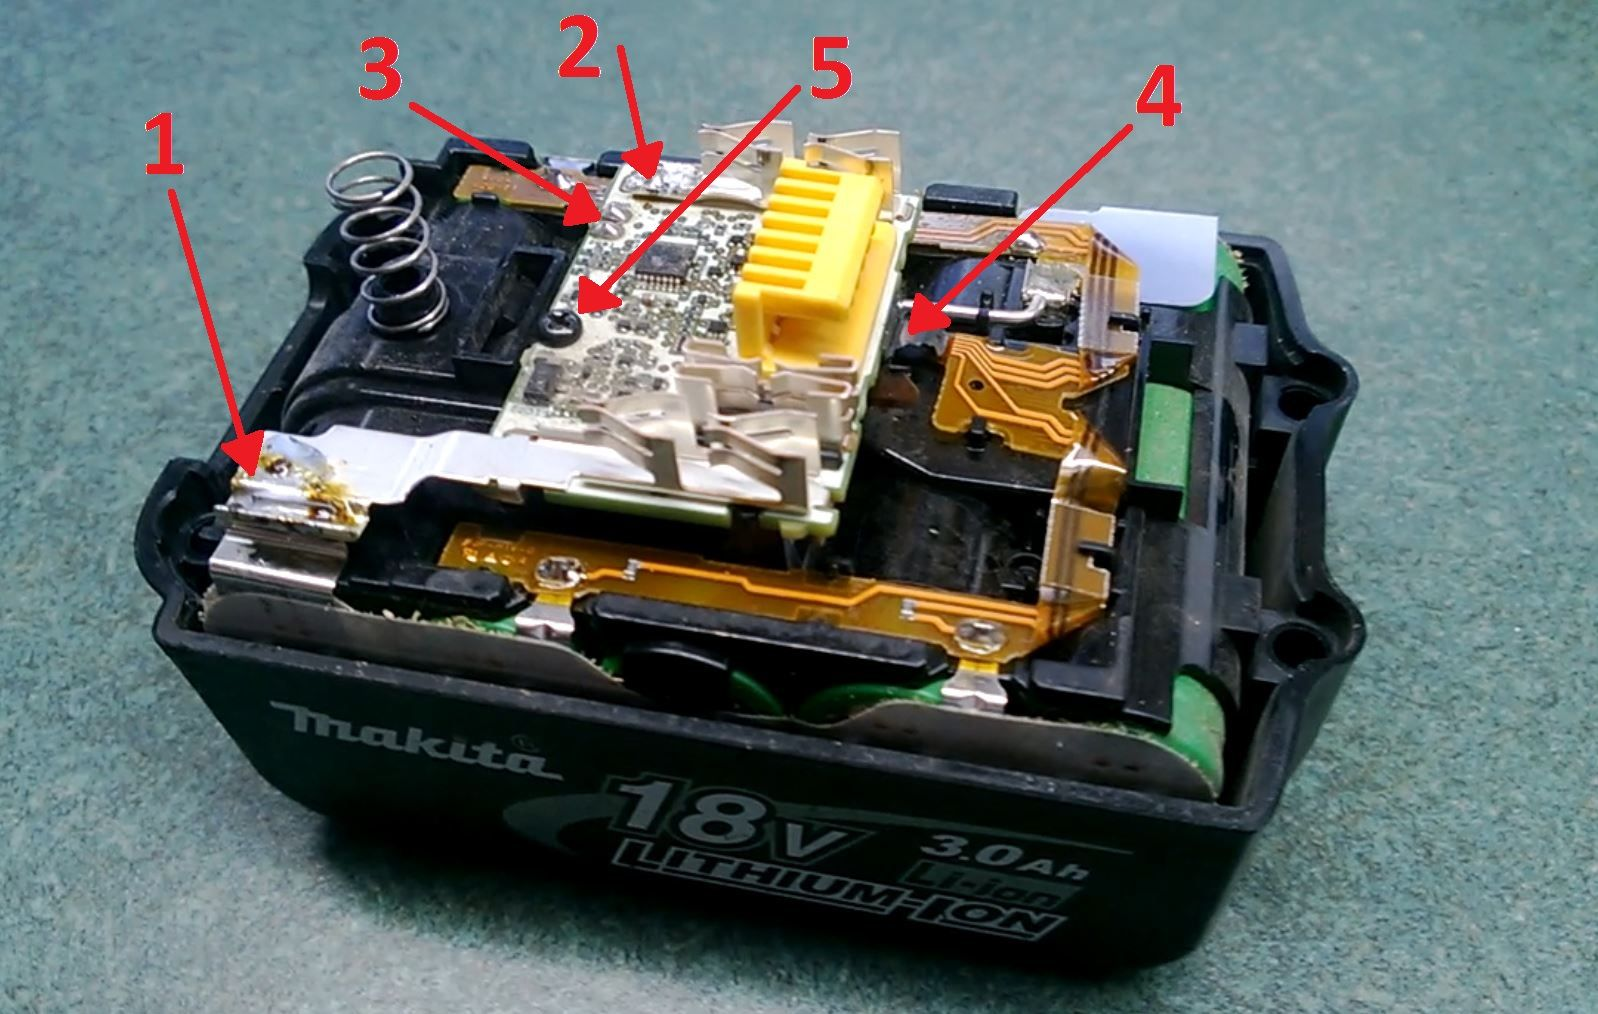 18v Lxt Battery Repair Chip Reset By Ryan Flint April 2013 Introduction The Makita Range Of Battery Power Tool Battery Repair Repair Makita Tools